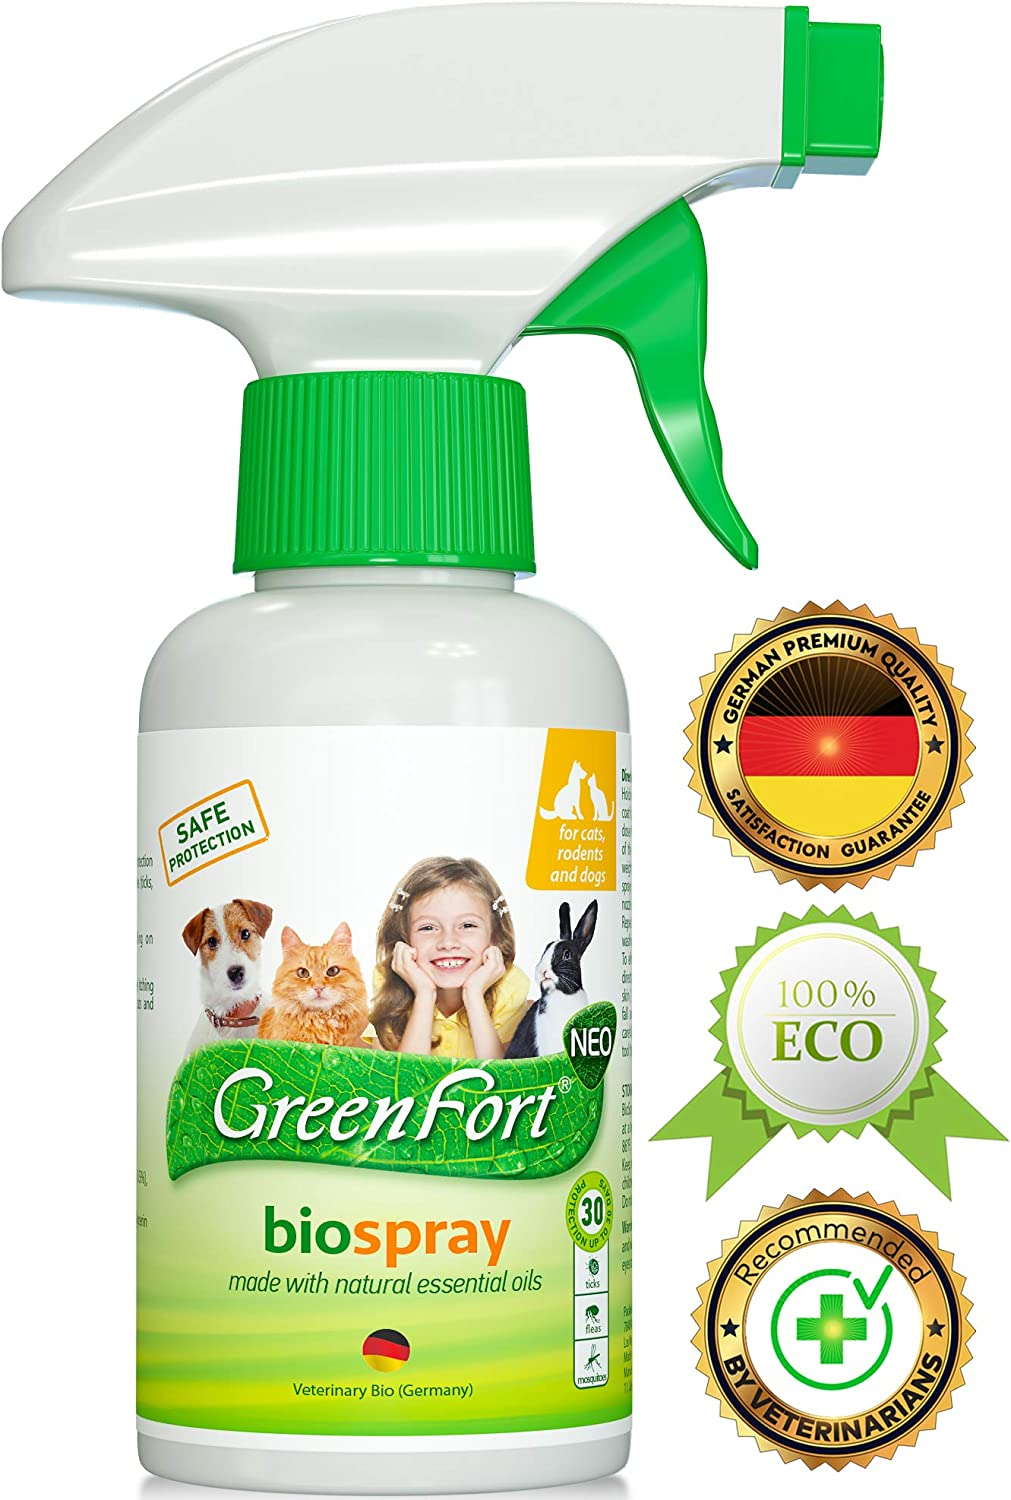 All Natural Flea Tick Home Spray for Dogs and Cats - Gentle Repellent and Safe Control - Recommended Flea Prevention for Pets